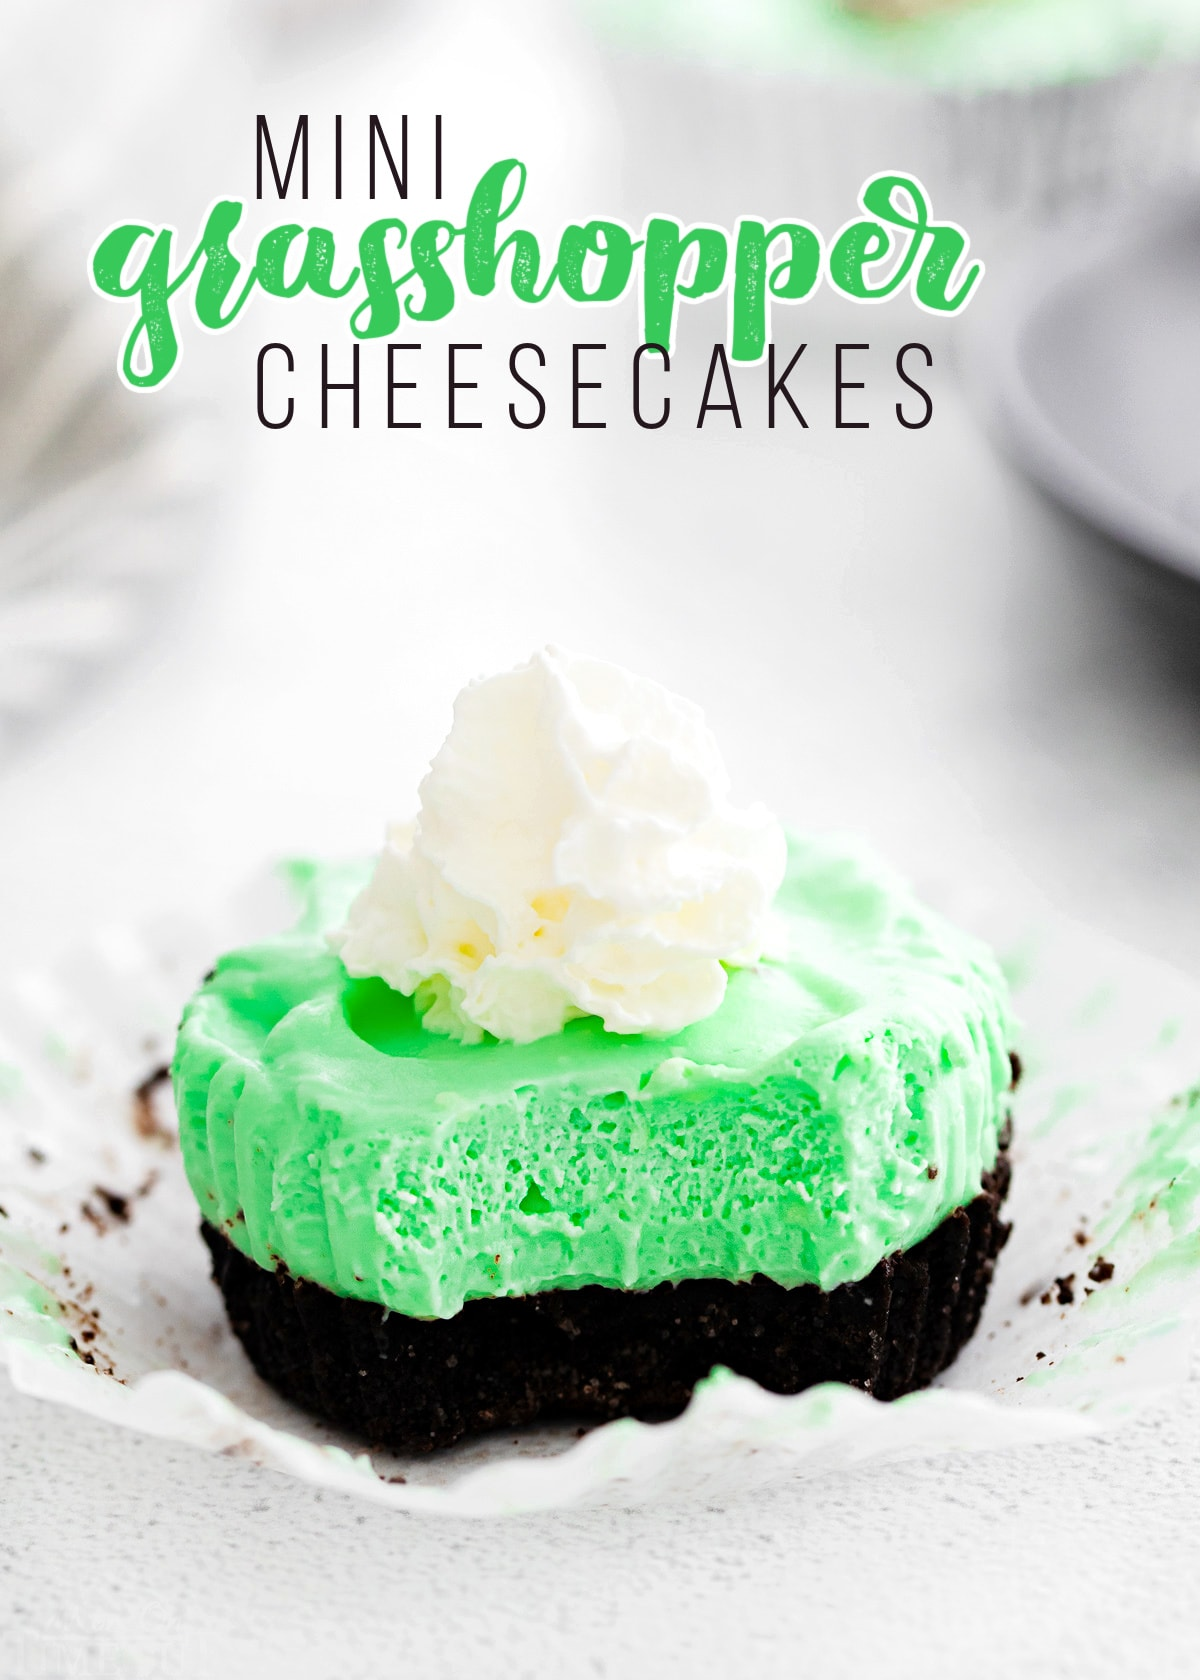 grasshopper mini cheesecake unwrapped and sitting on white surface with title overlay at top.